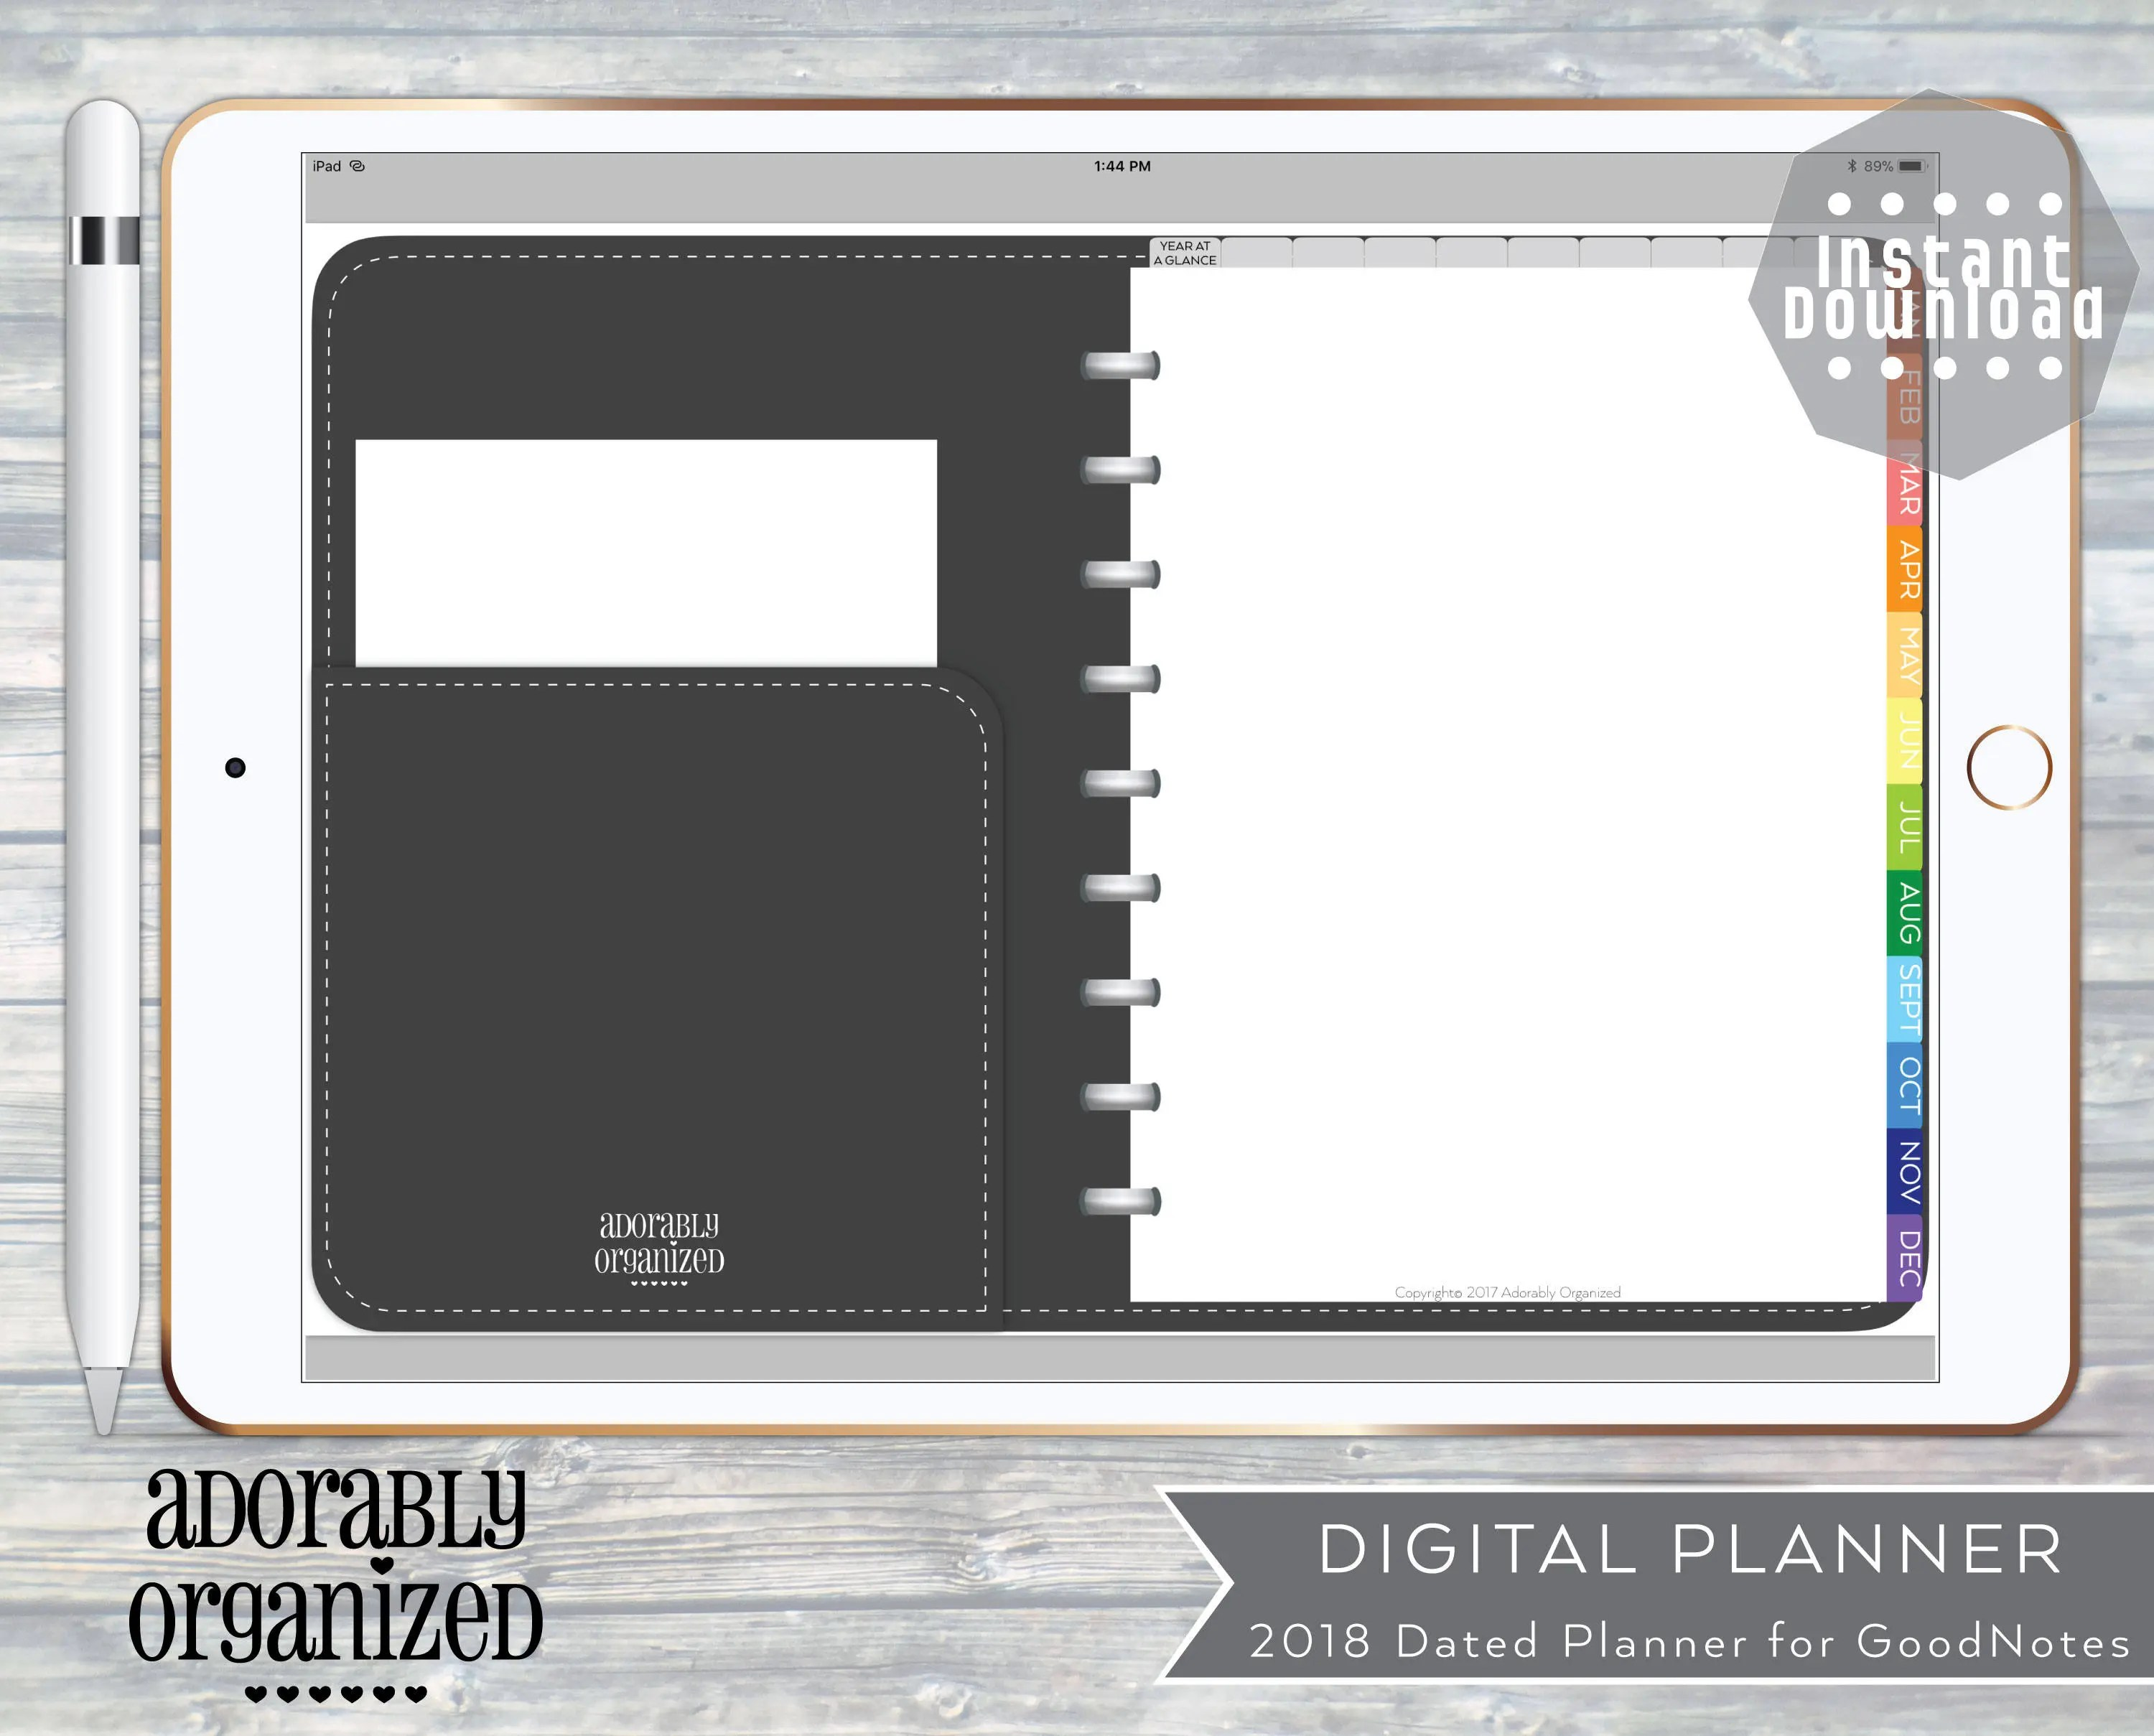 2018 DIGITAL PLANNER for GoodNotes iPadDated with linked Etsy